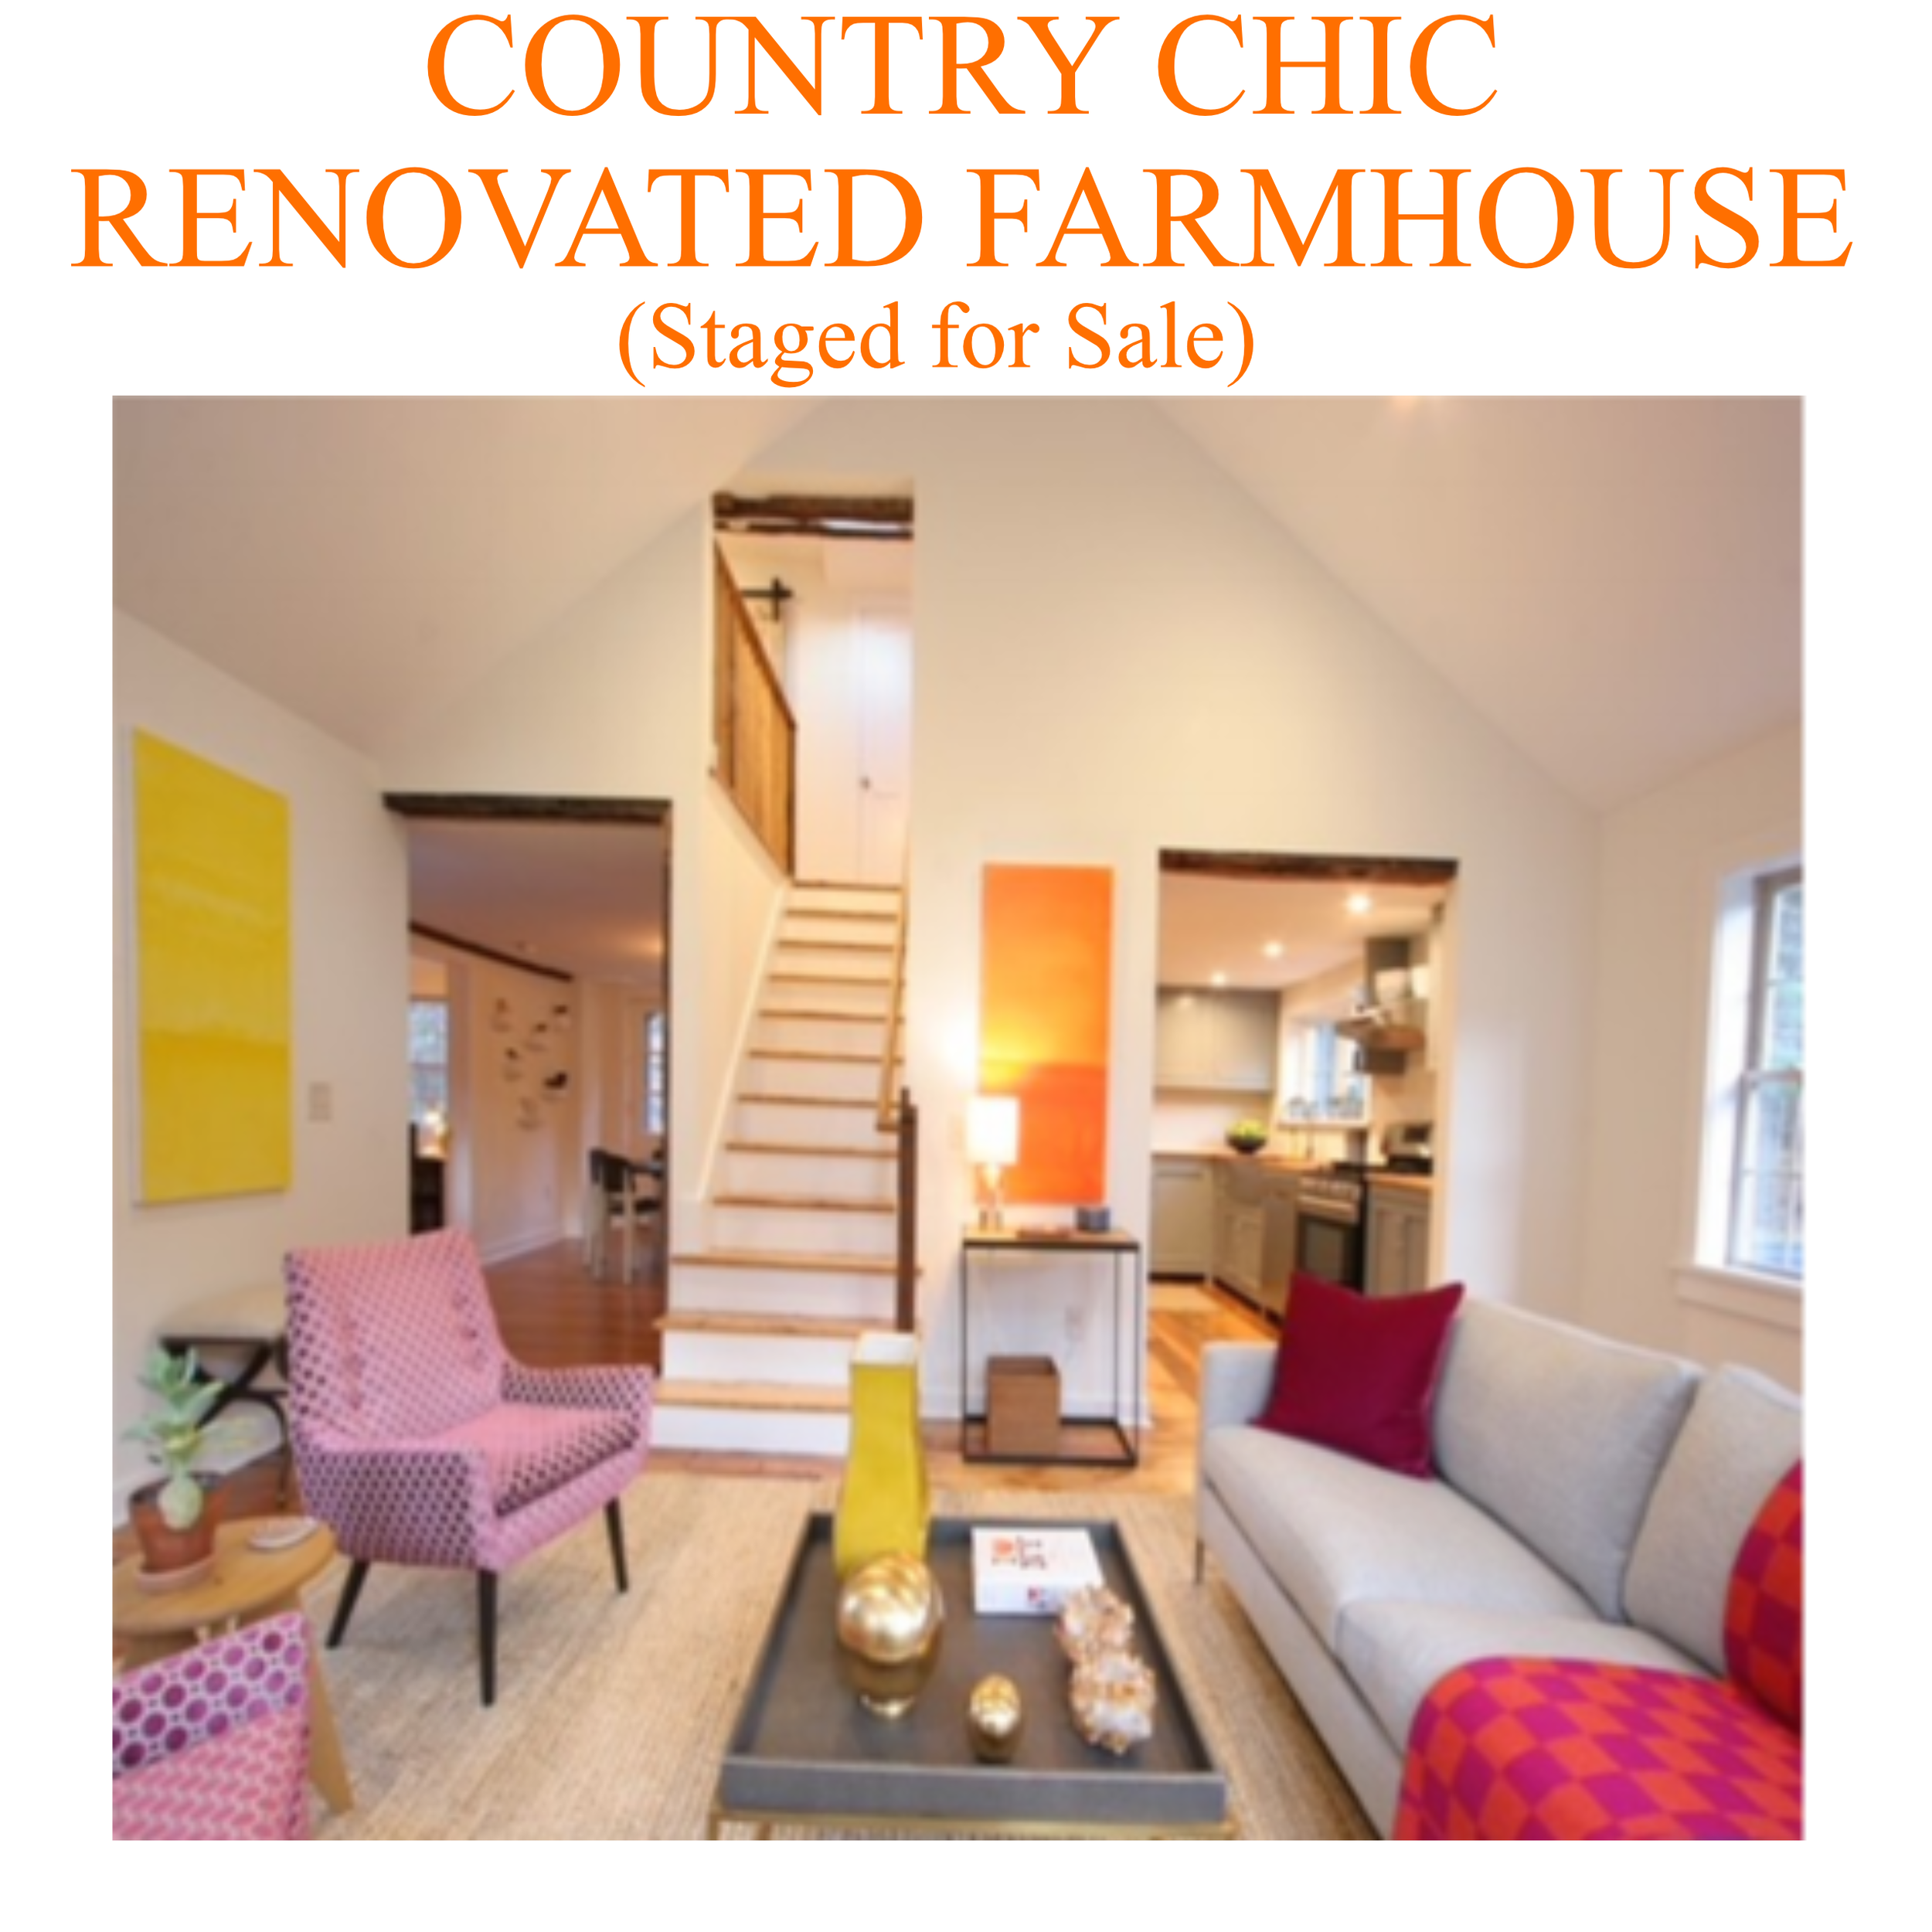 Country Chic Renovated Farmhouse.png